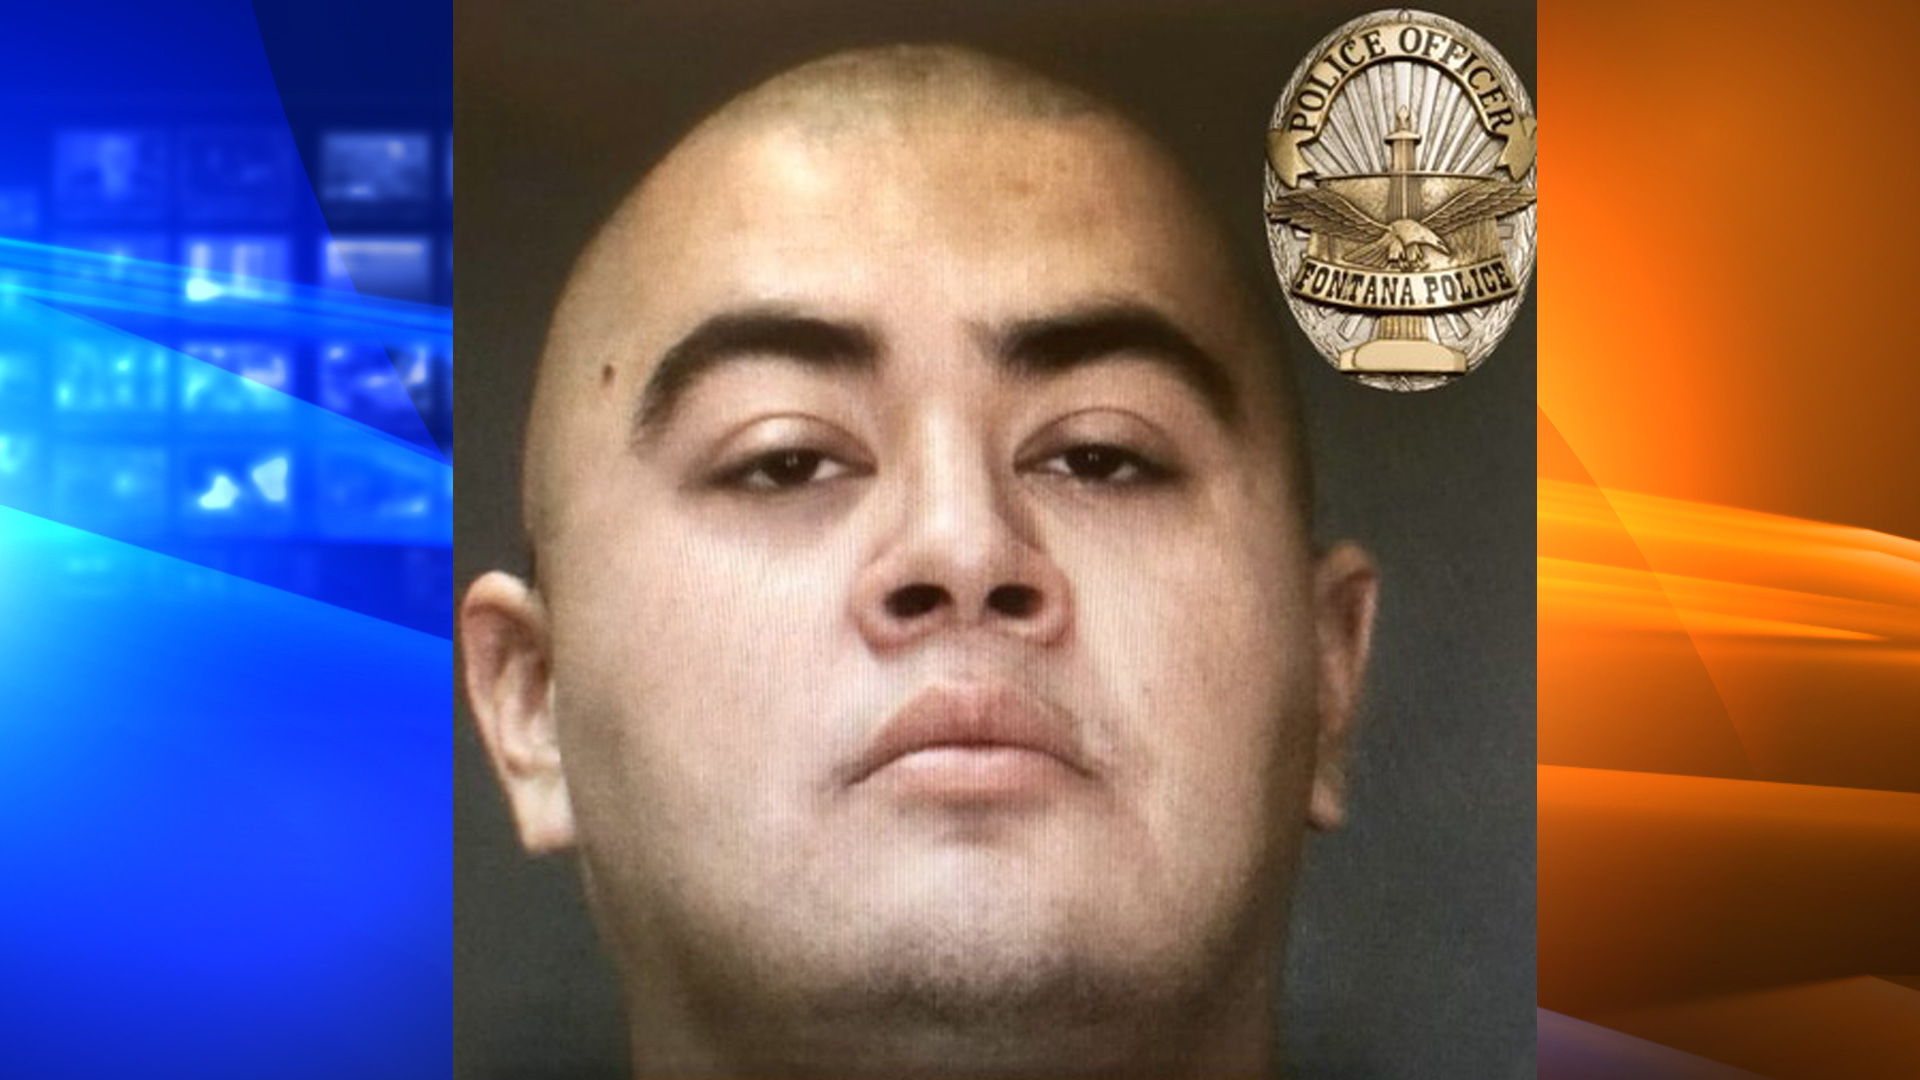 Luis Rivera is seen in a booking photo released by the Fontana Police Department on June 24, 2021.